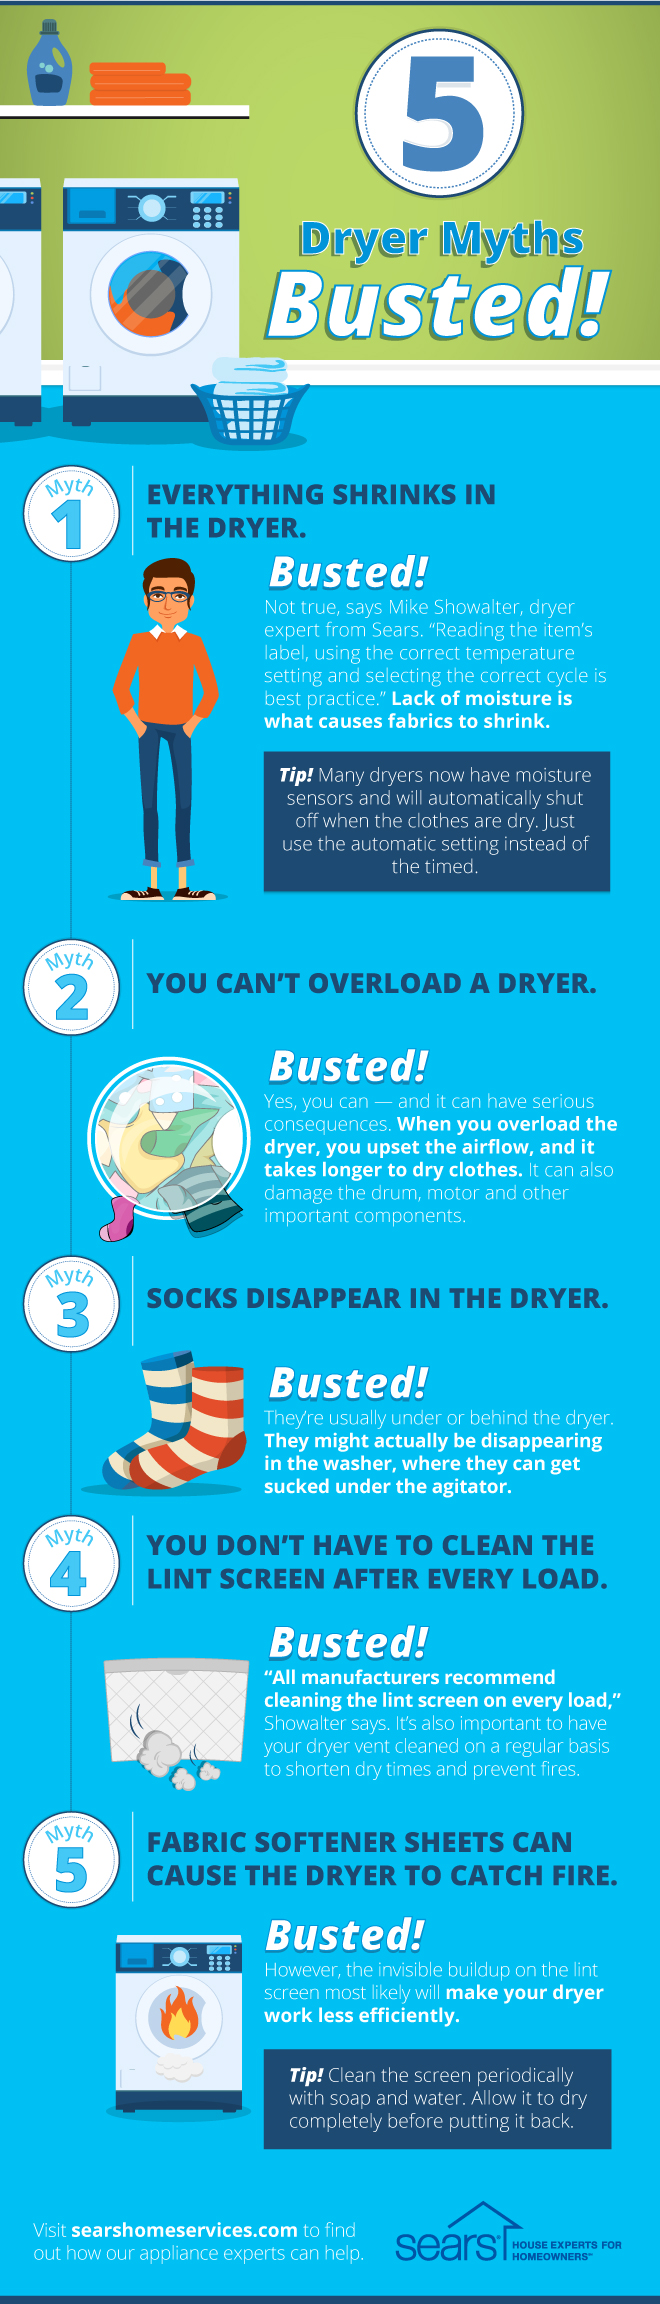 5 Laundry Myths Debunked: Dryer Edition